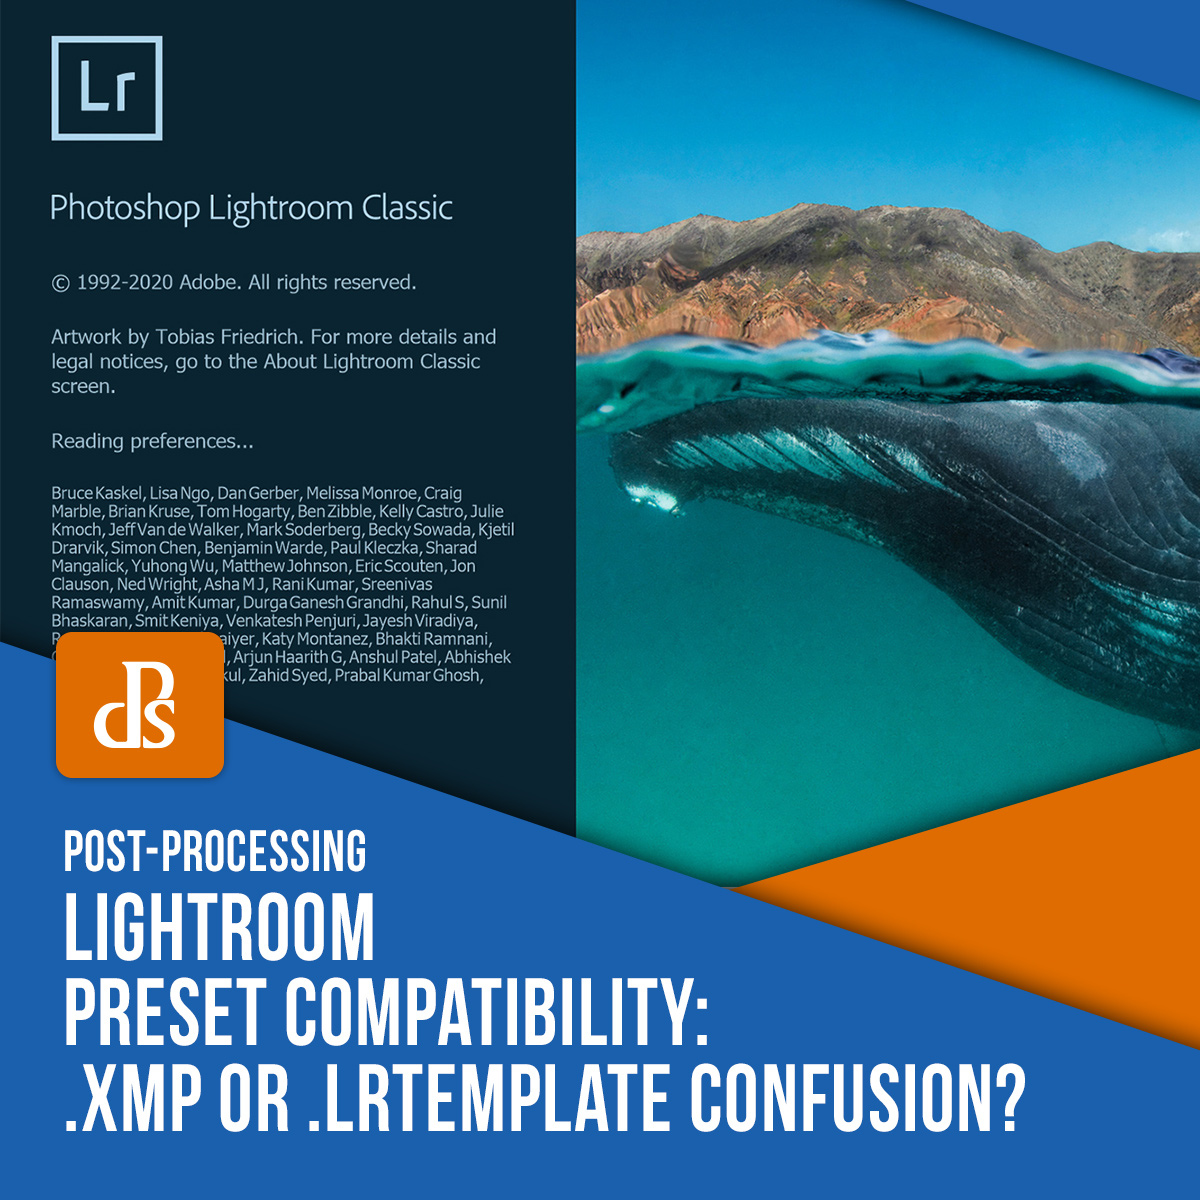 Lightroom preset compatibility